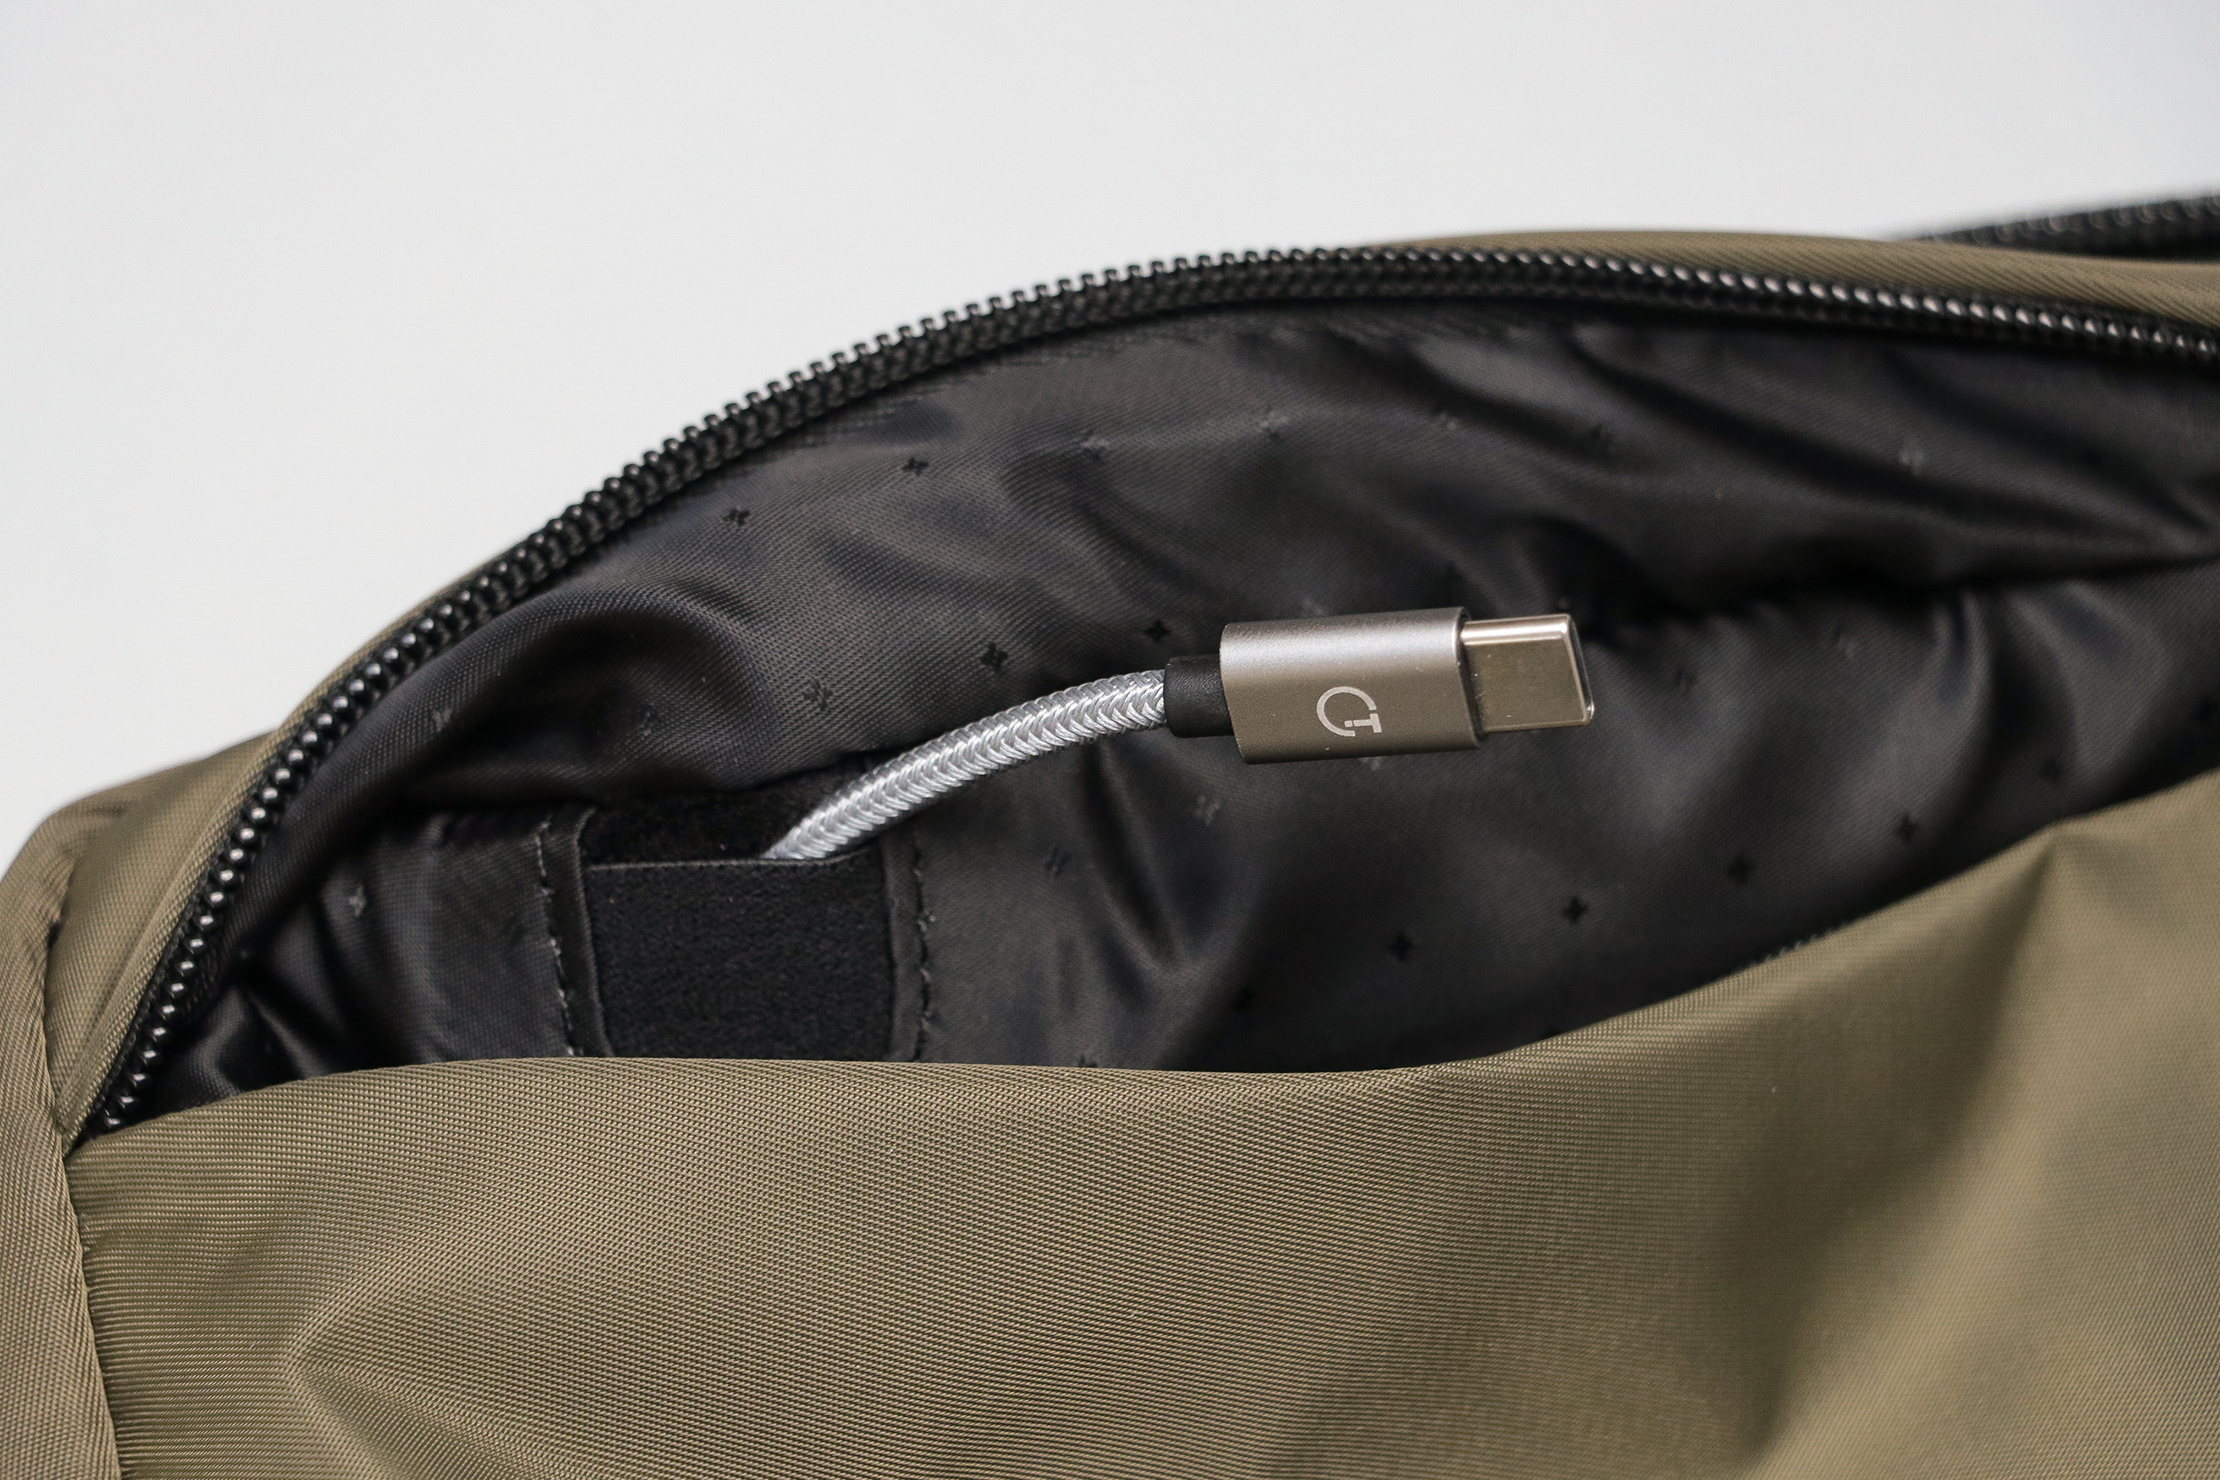 Incase Nylon Accessory Organizer Front Pocket Passthrough